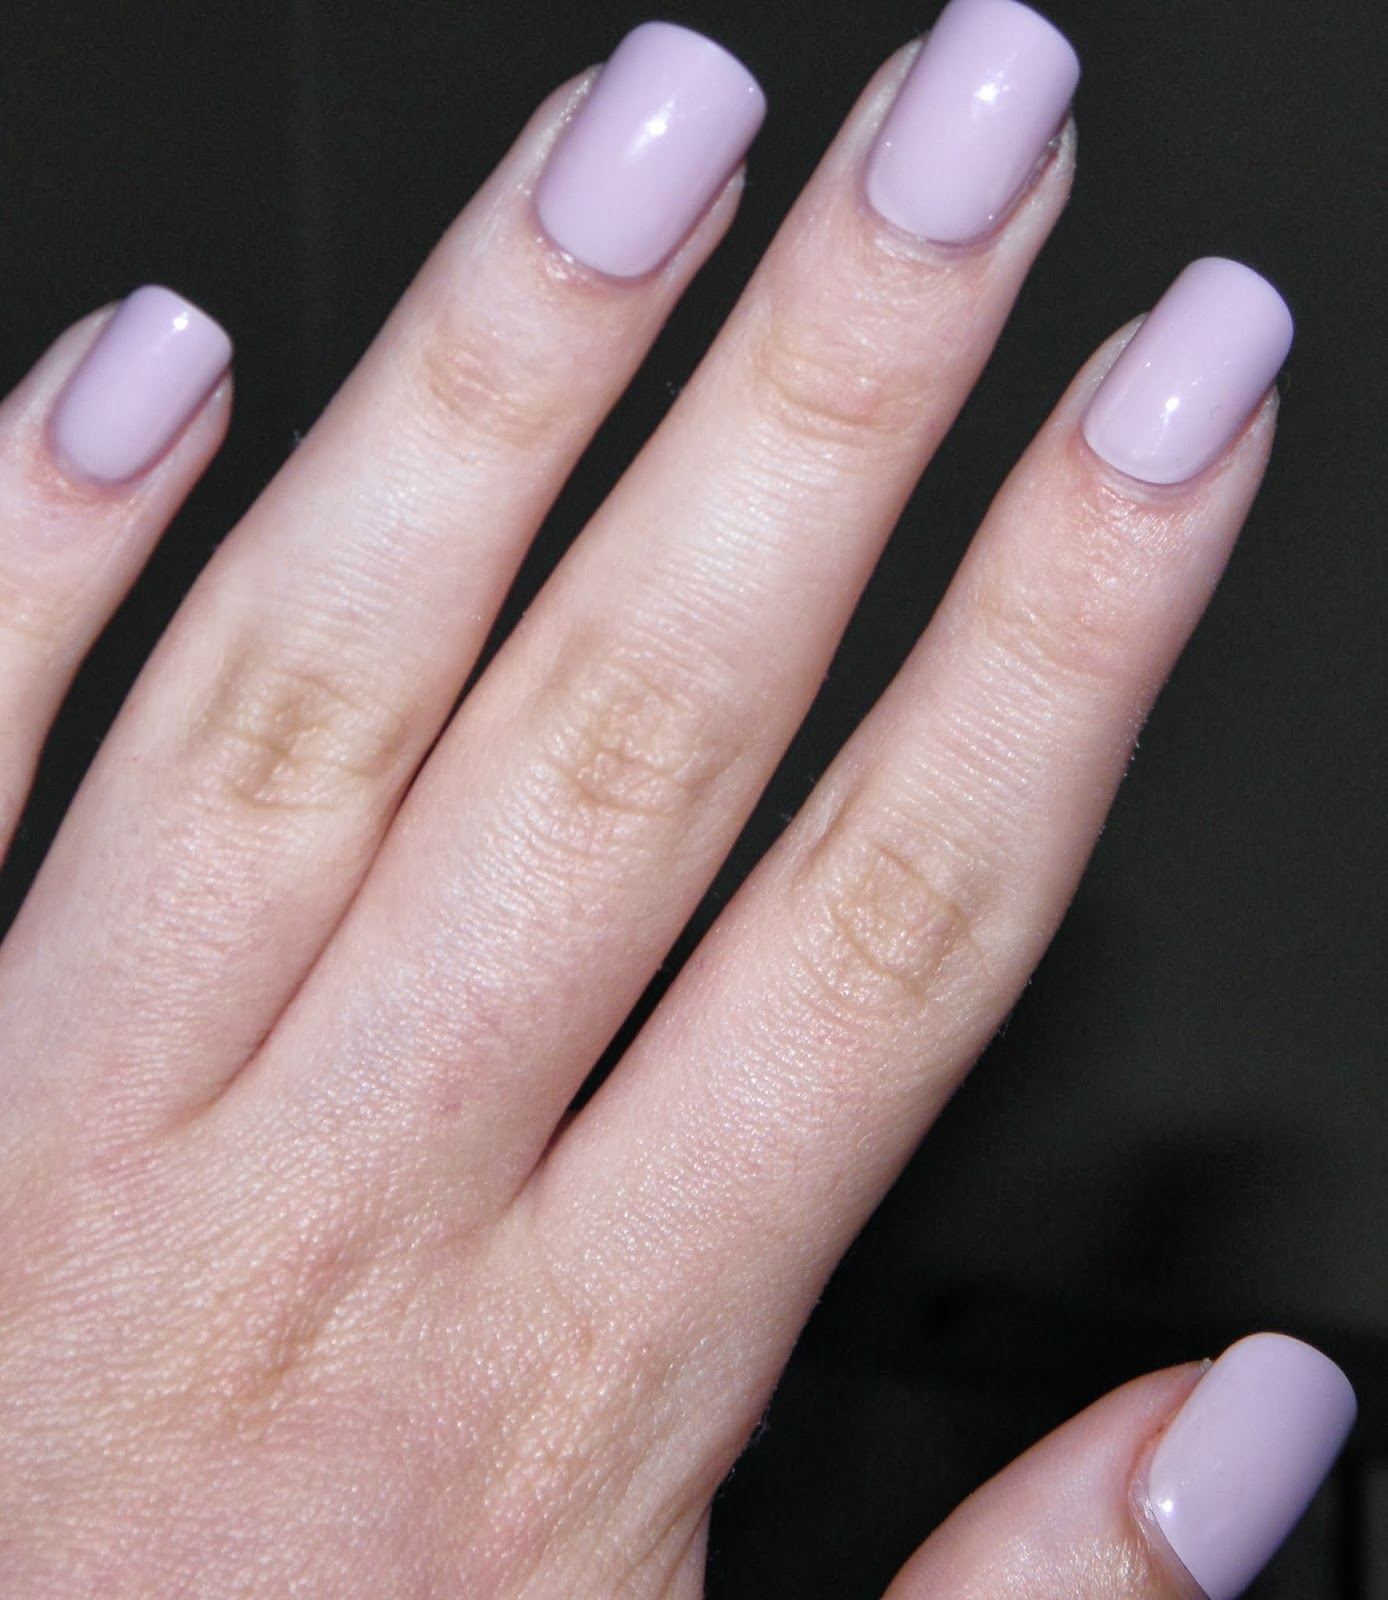 Elegant Touch Polished in \'Ethereal Rose\' NOTD - // GEEK GETS GLAM //